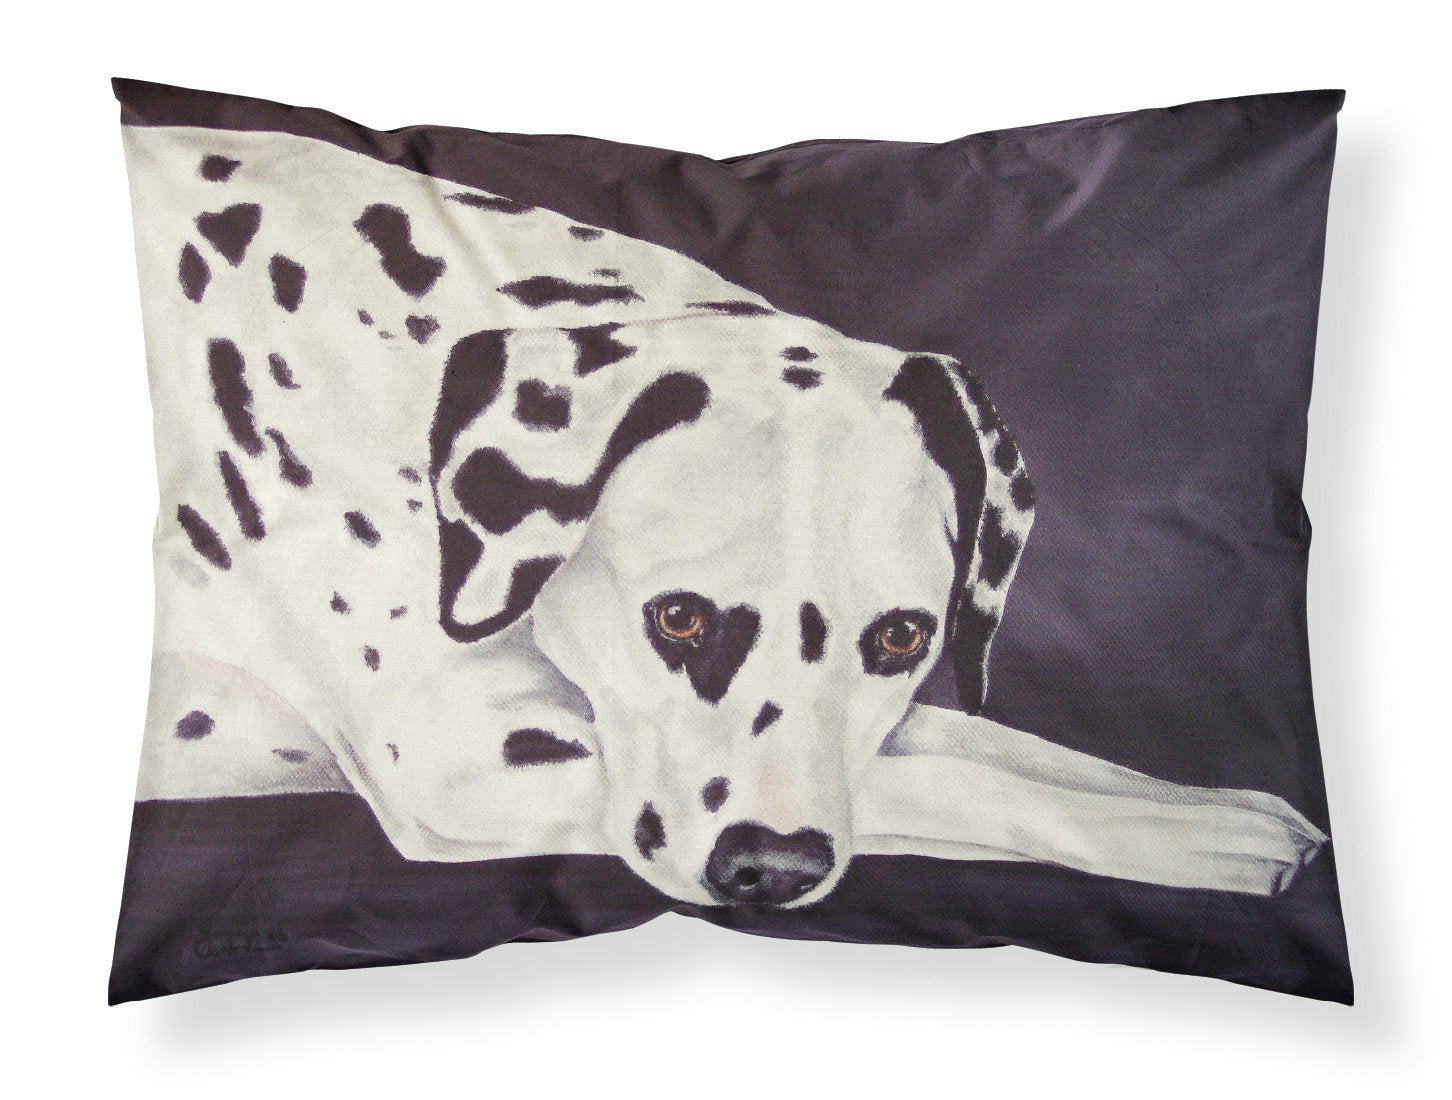 Buy this Dal Dalmatian Fabric Standard Pillowcase AMB1193PILLOWCASE